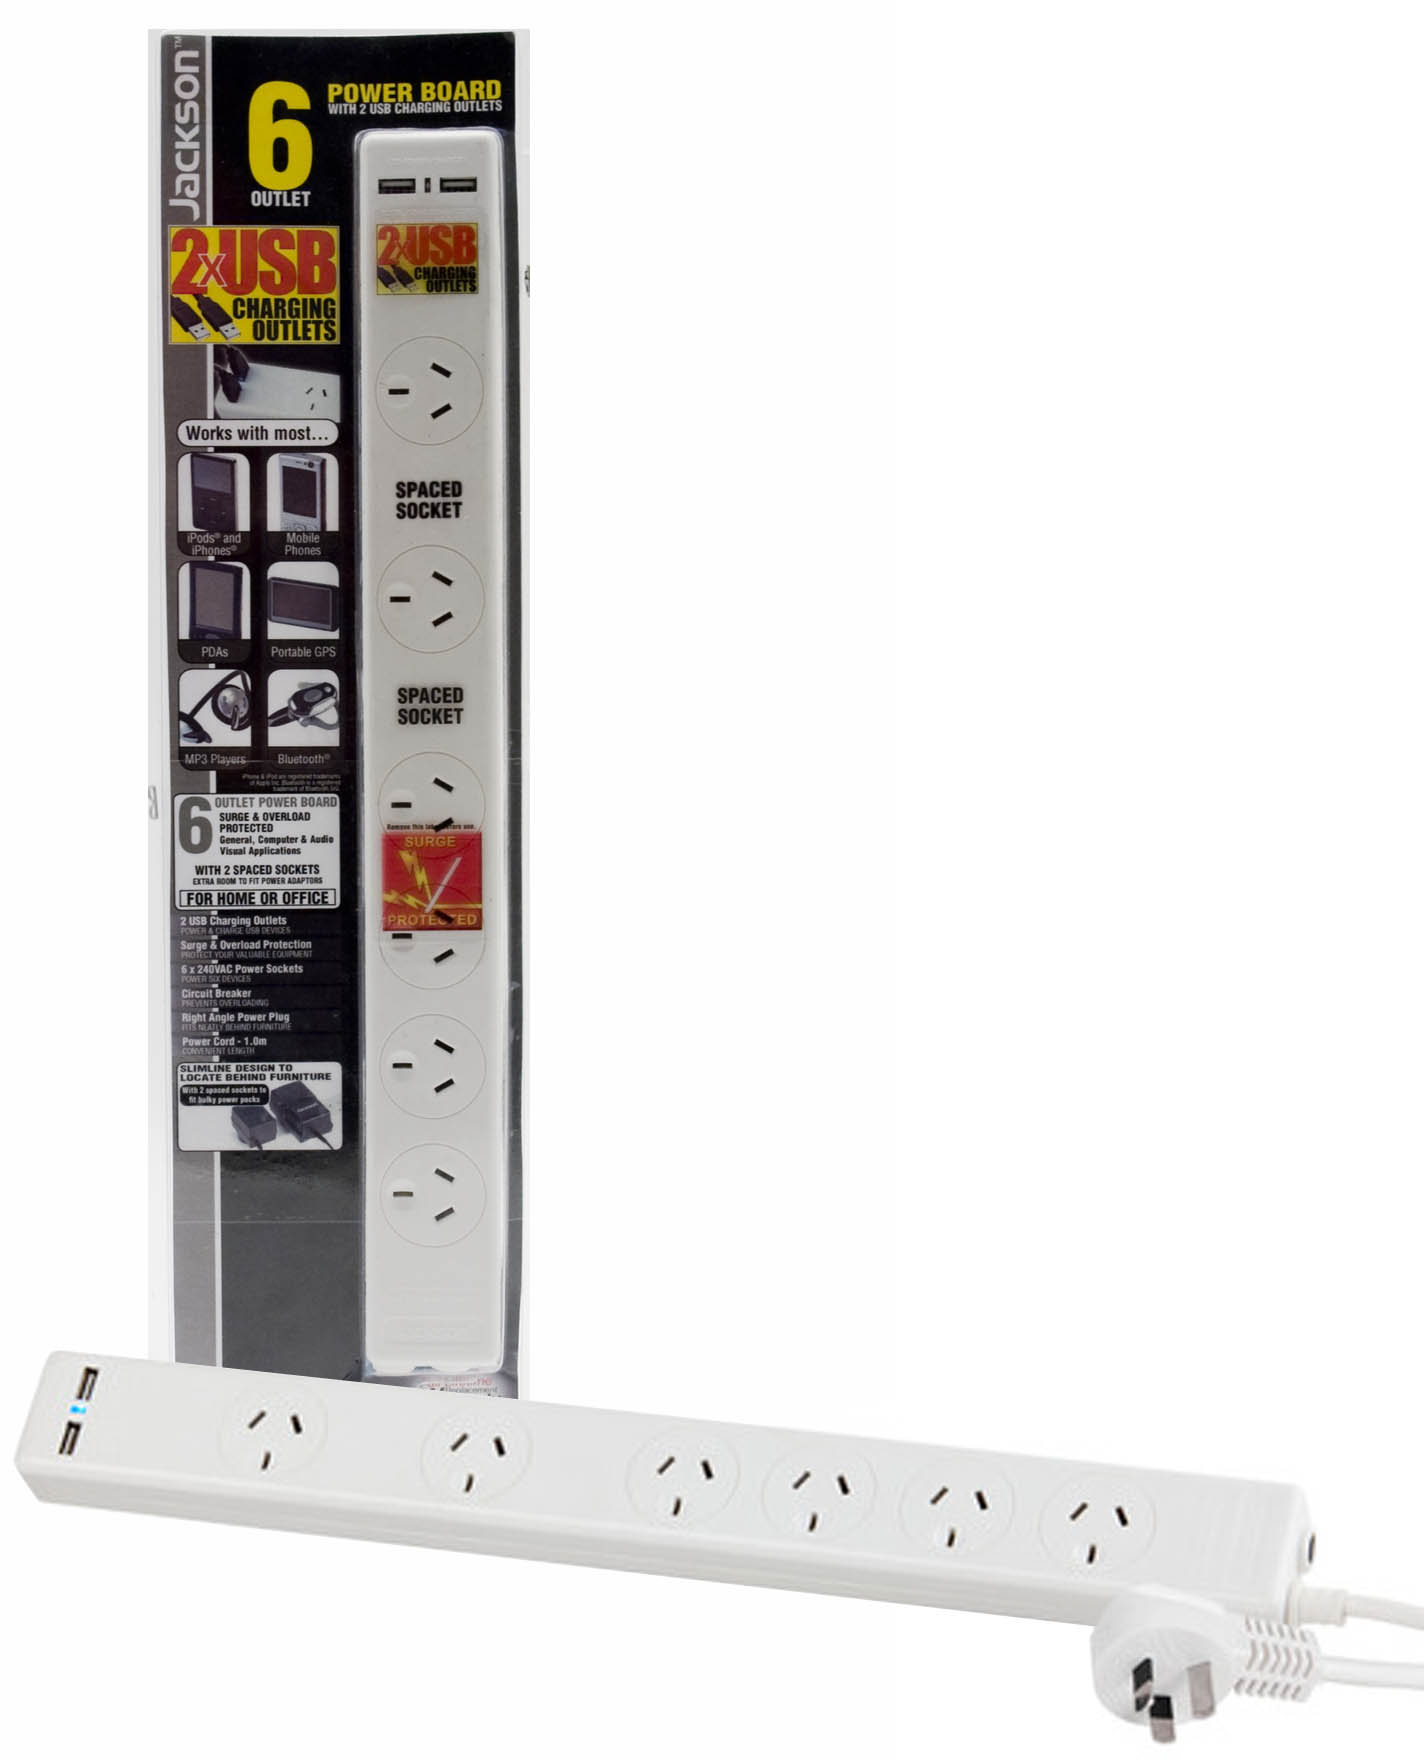 Jackson 6 way Protected Powerboard 2 double spaced sockets and 2x USB Outlets, Surge & Overload Protected